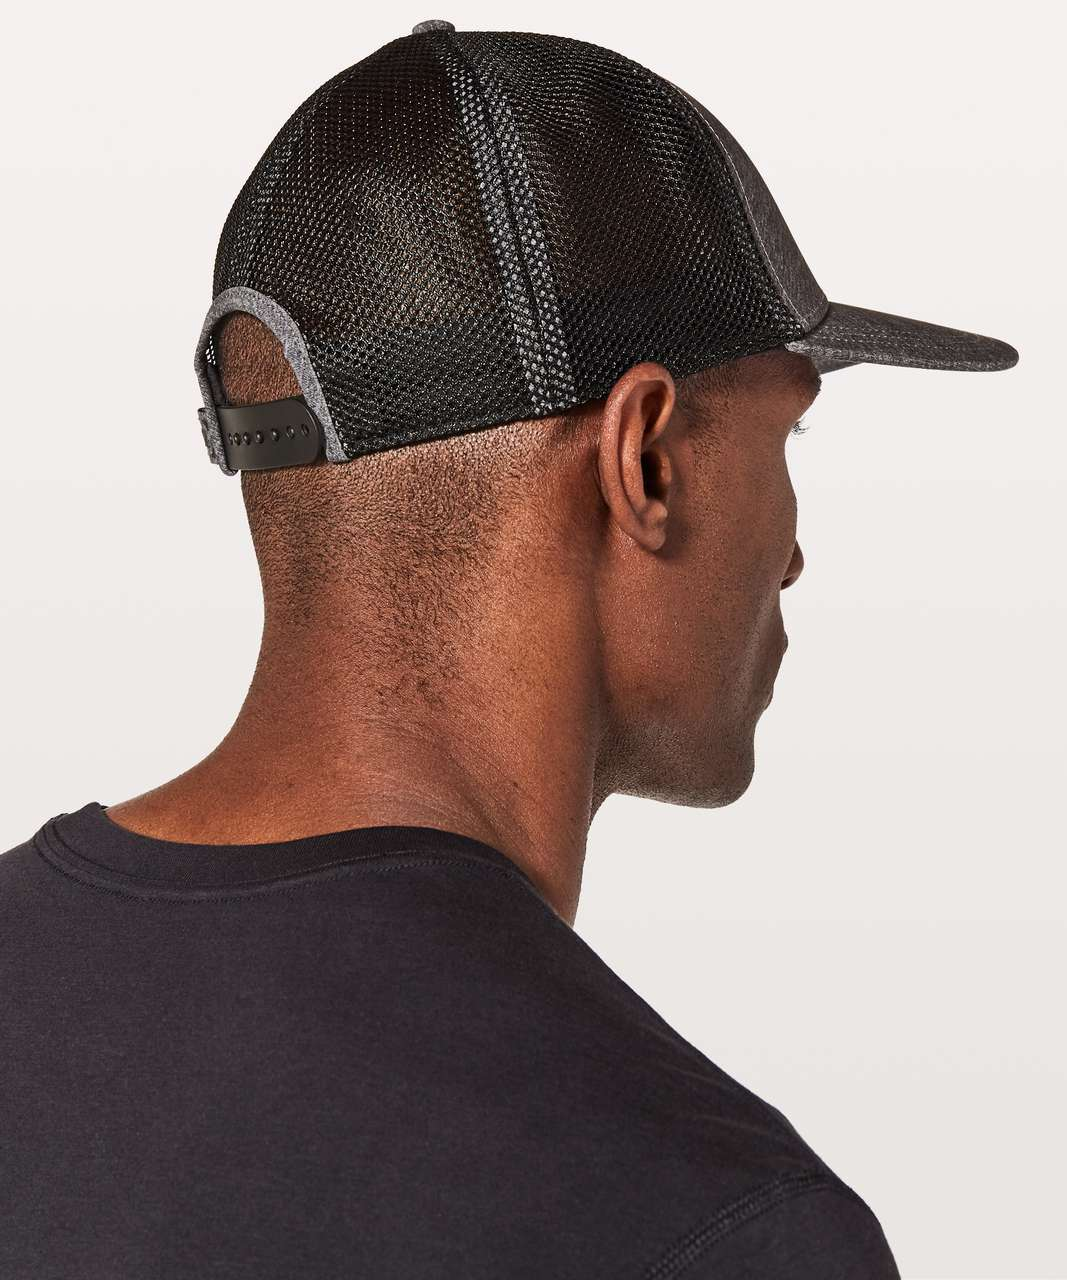 Lululemon Commission Hat - Heathered Texture Printed Greyt Deep Coal / Black